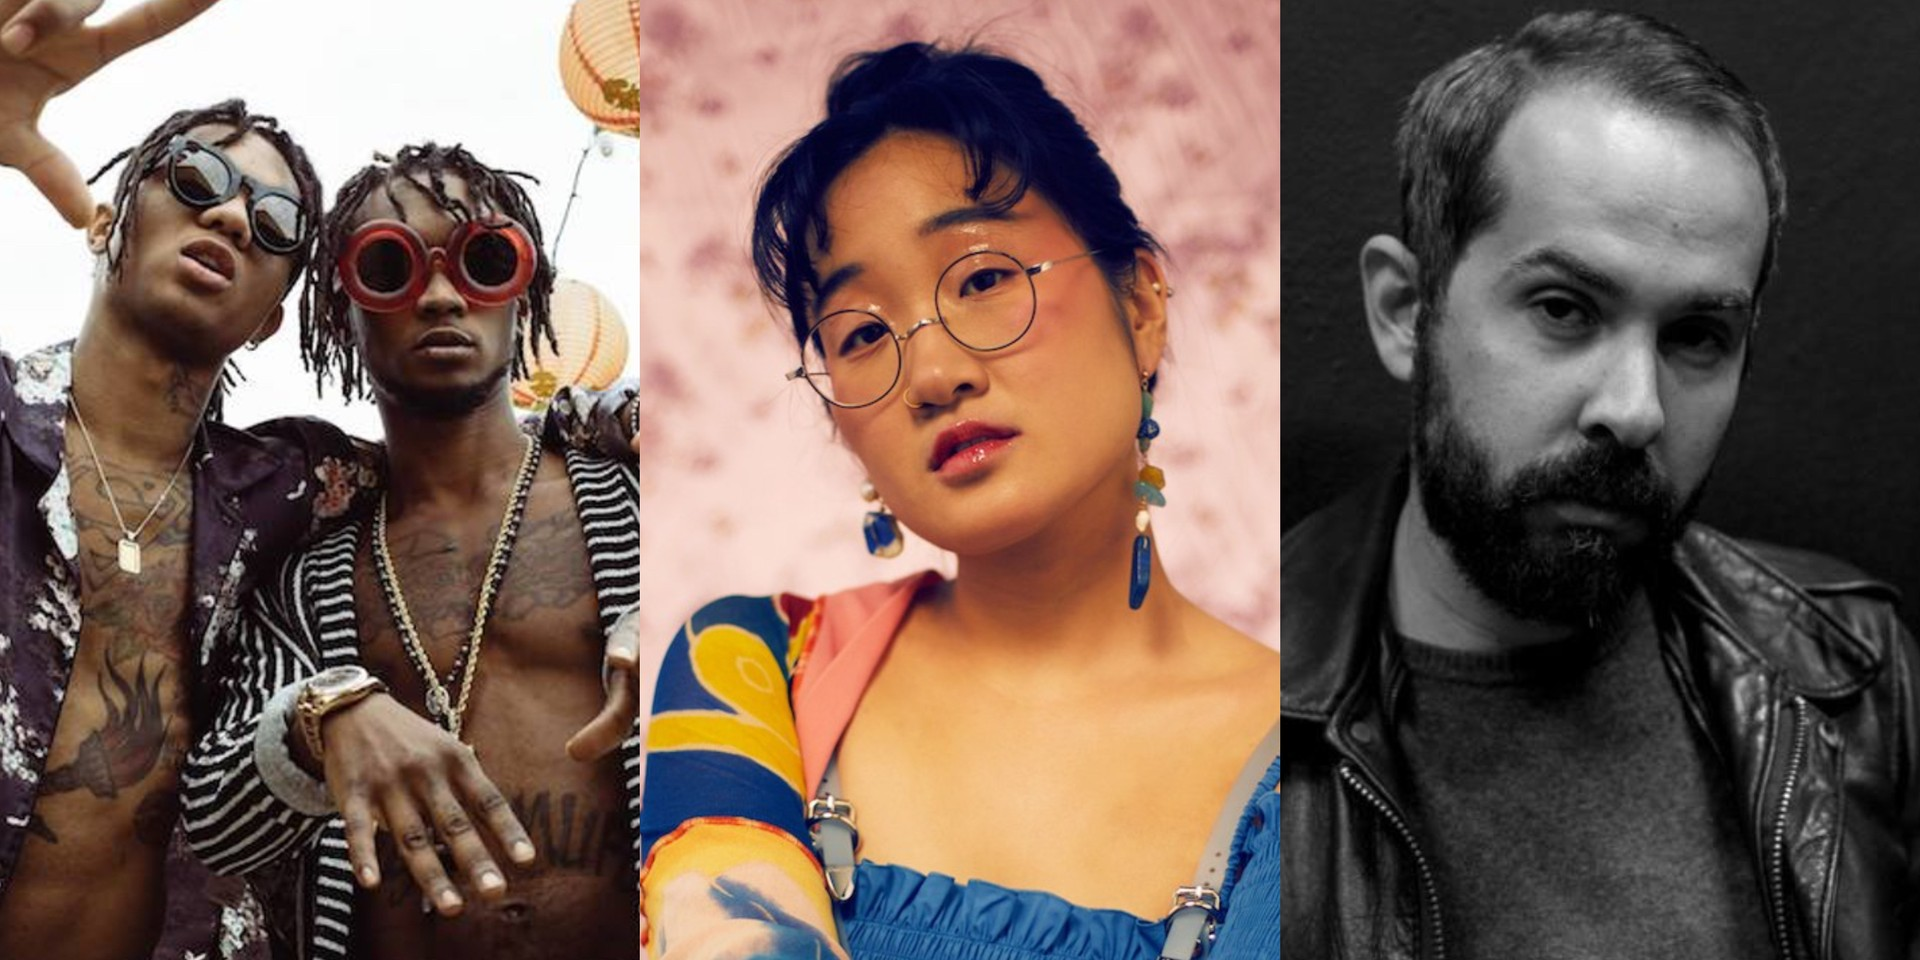 We The Fest announces Phase 1 line-up - Rae Sremmurd, Yaeji, Cigarettes After Sex and more